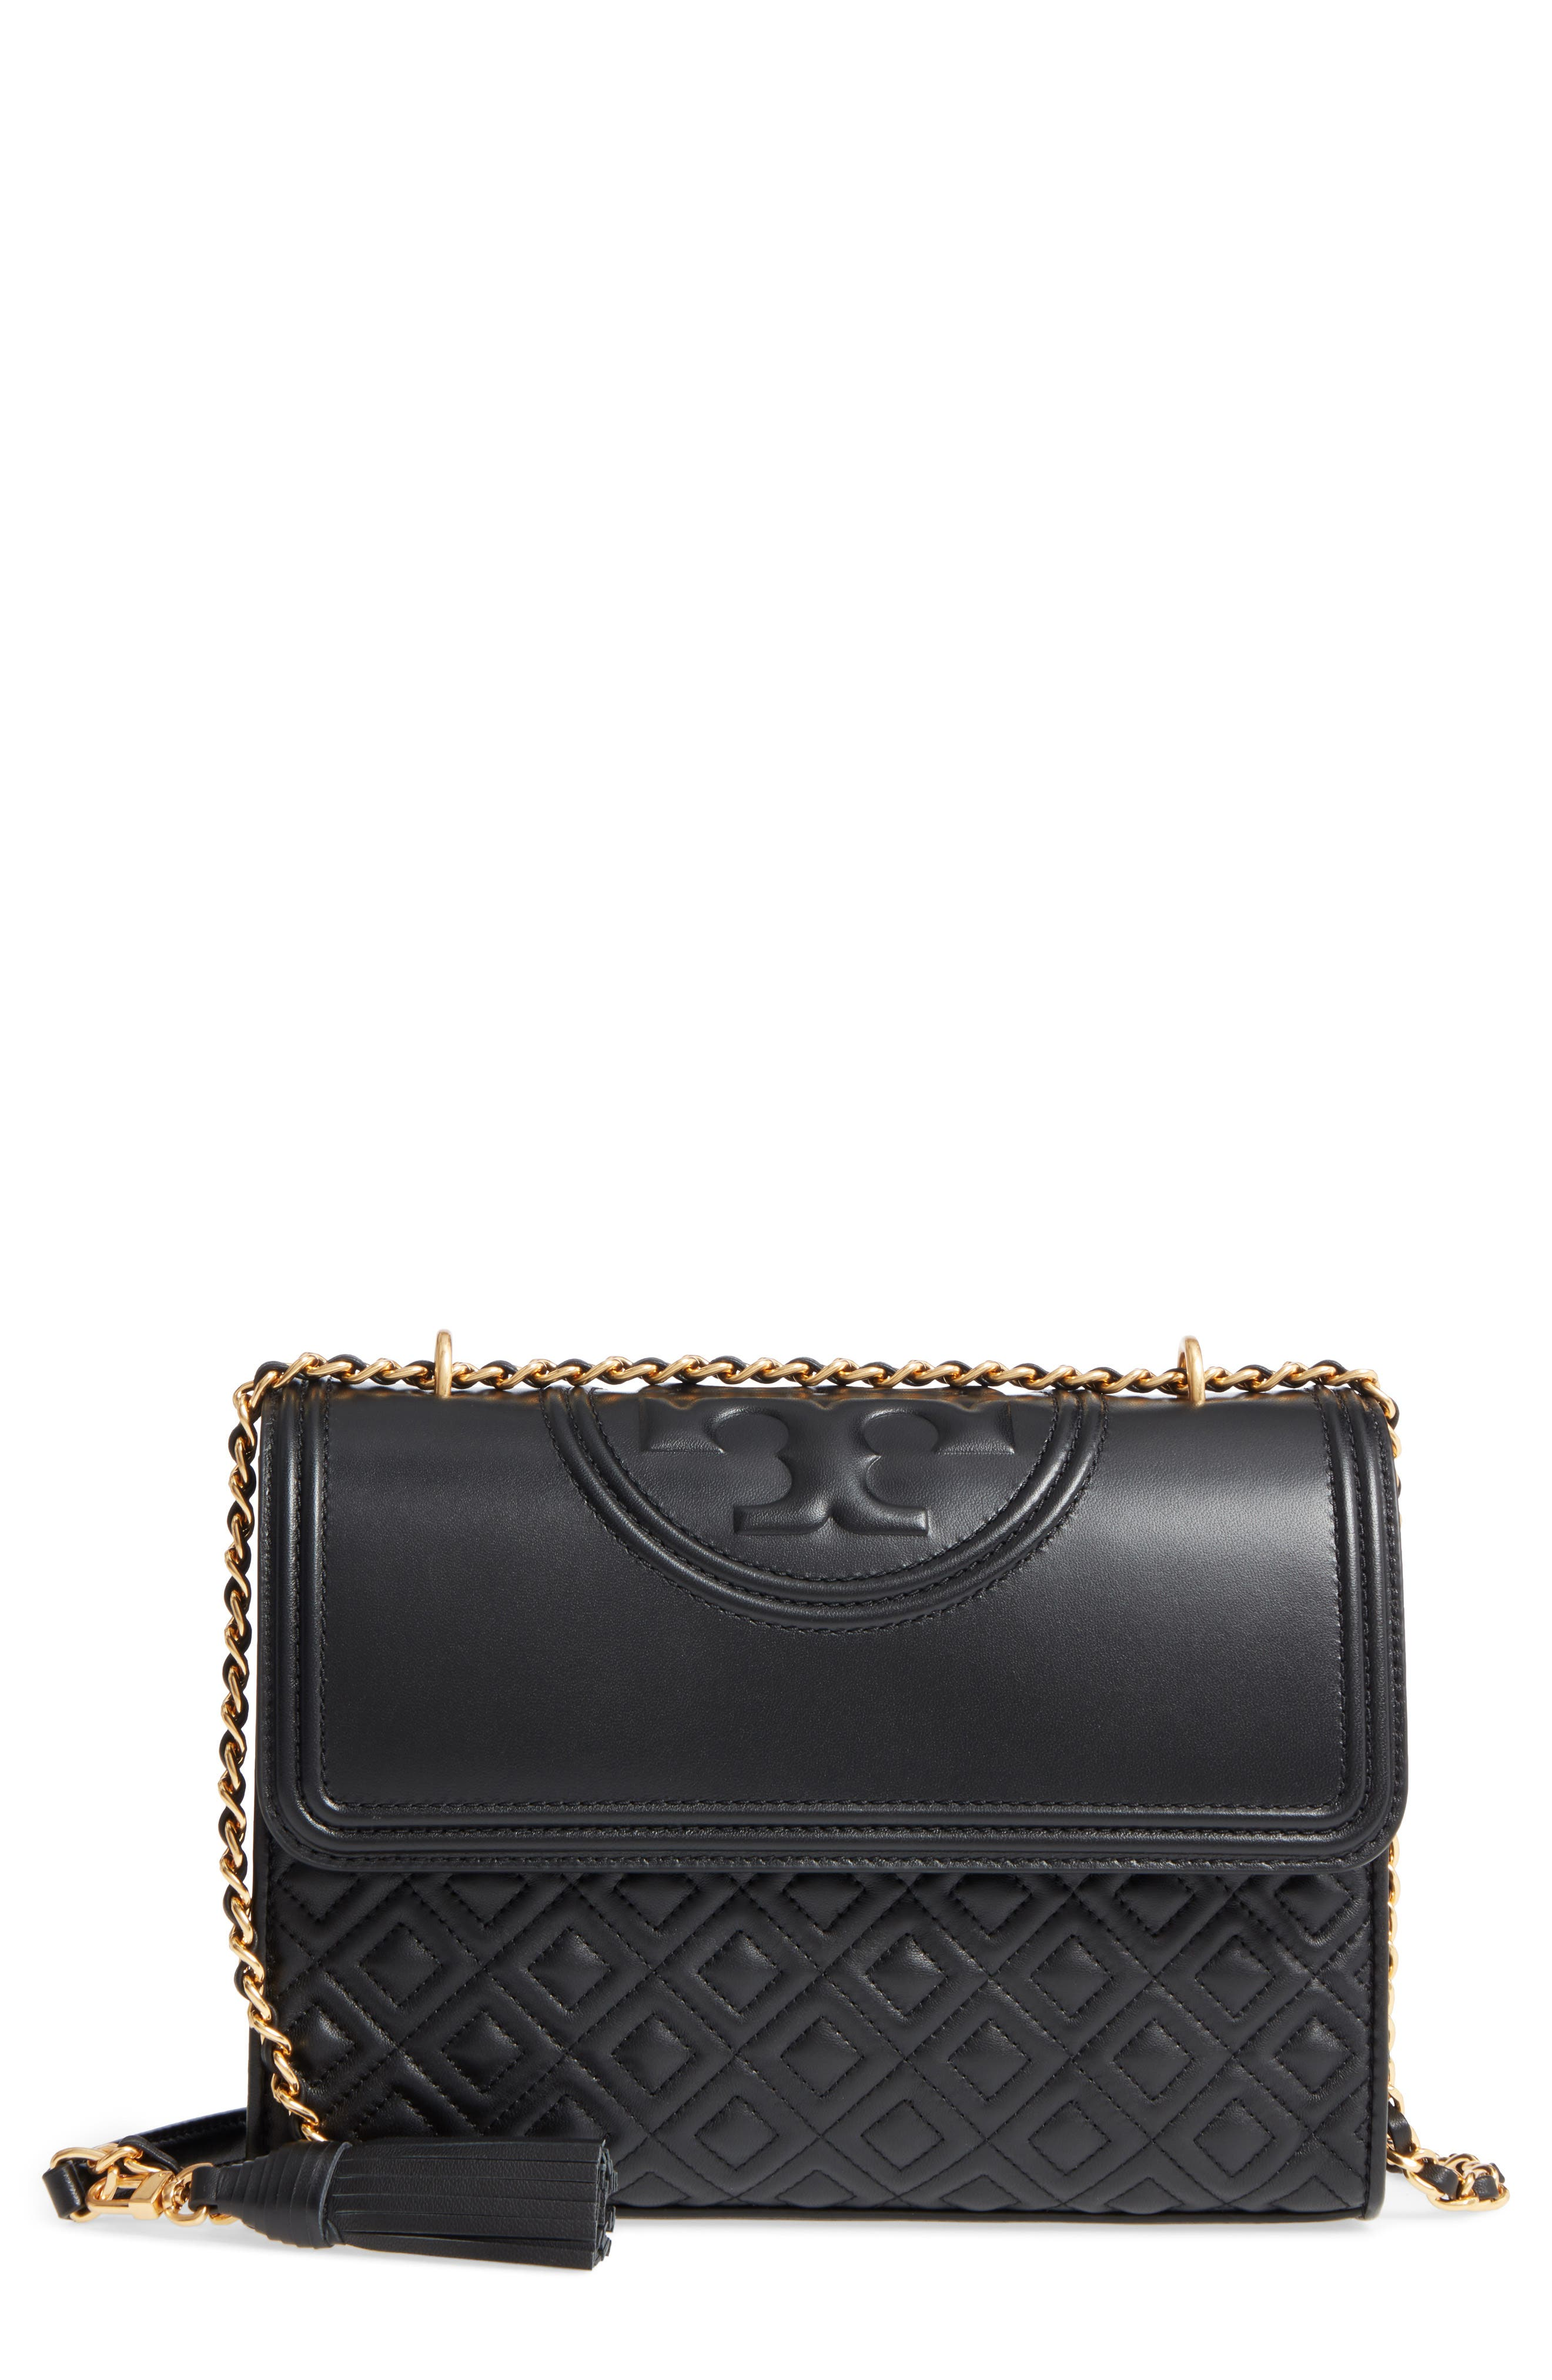 Alternate Image 1 Selected - Tory Burch Fleming Quilted Lambskin Leather Convertible Shoulder Bag